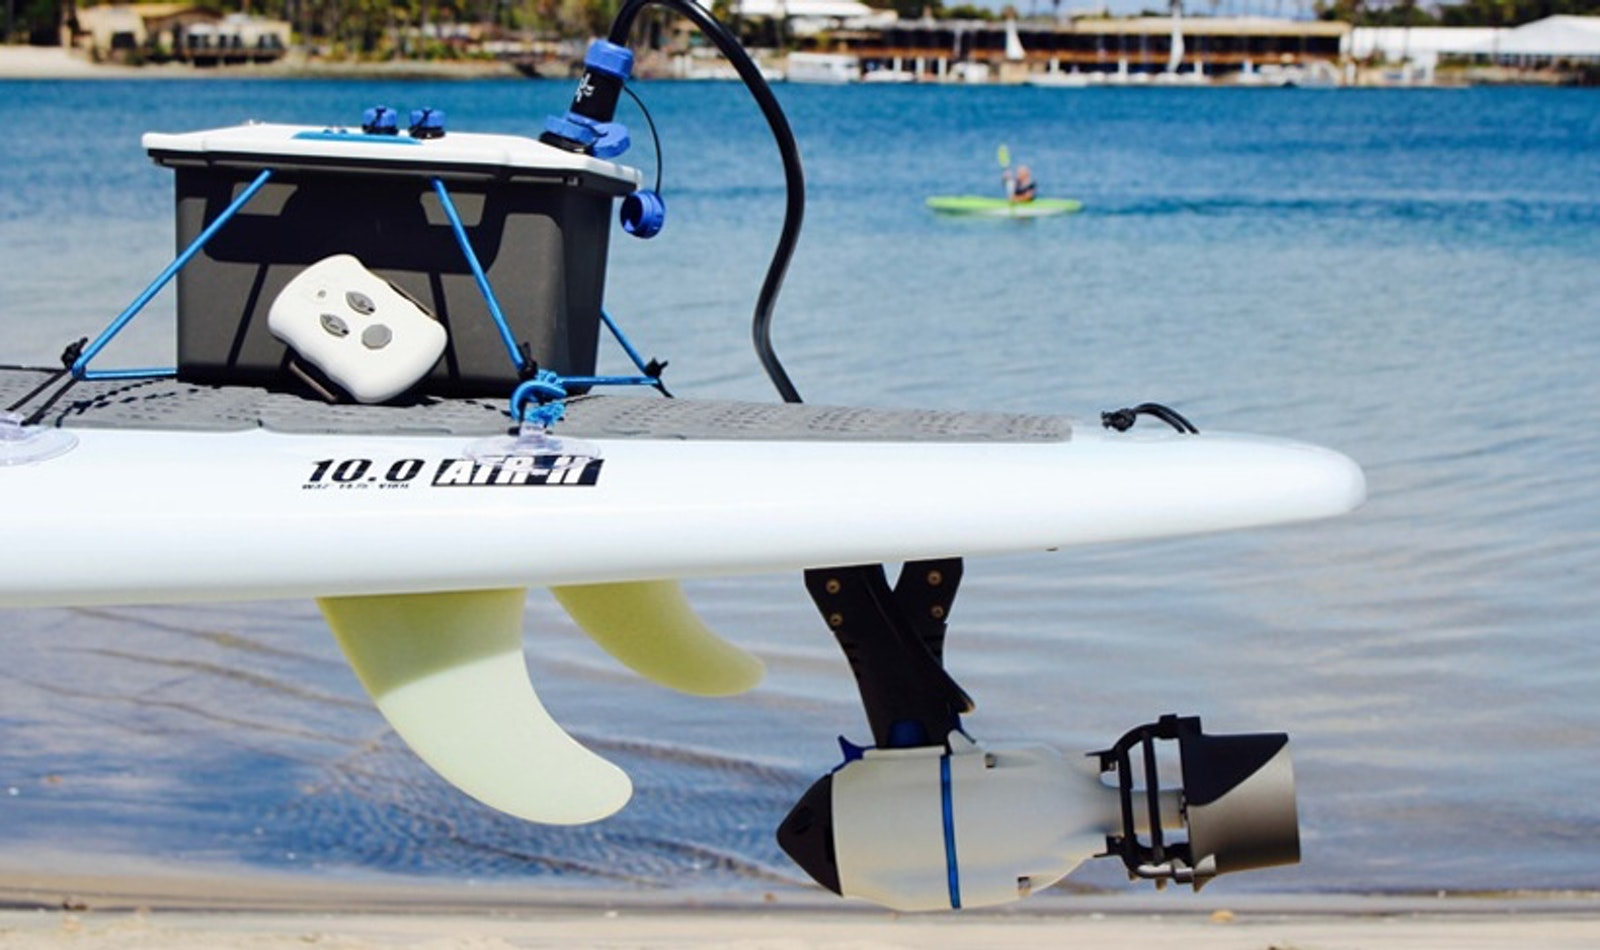 Lightweight water jet system adds propulsion to water sports